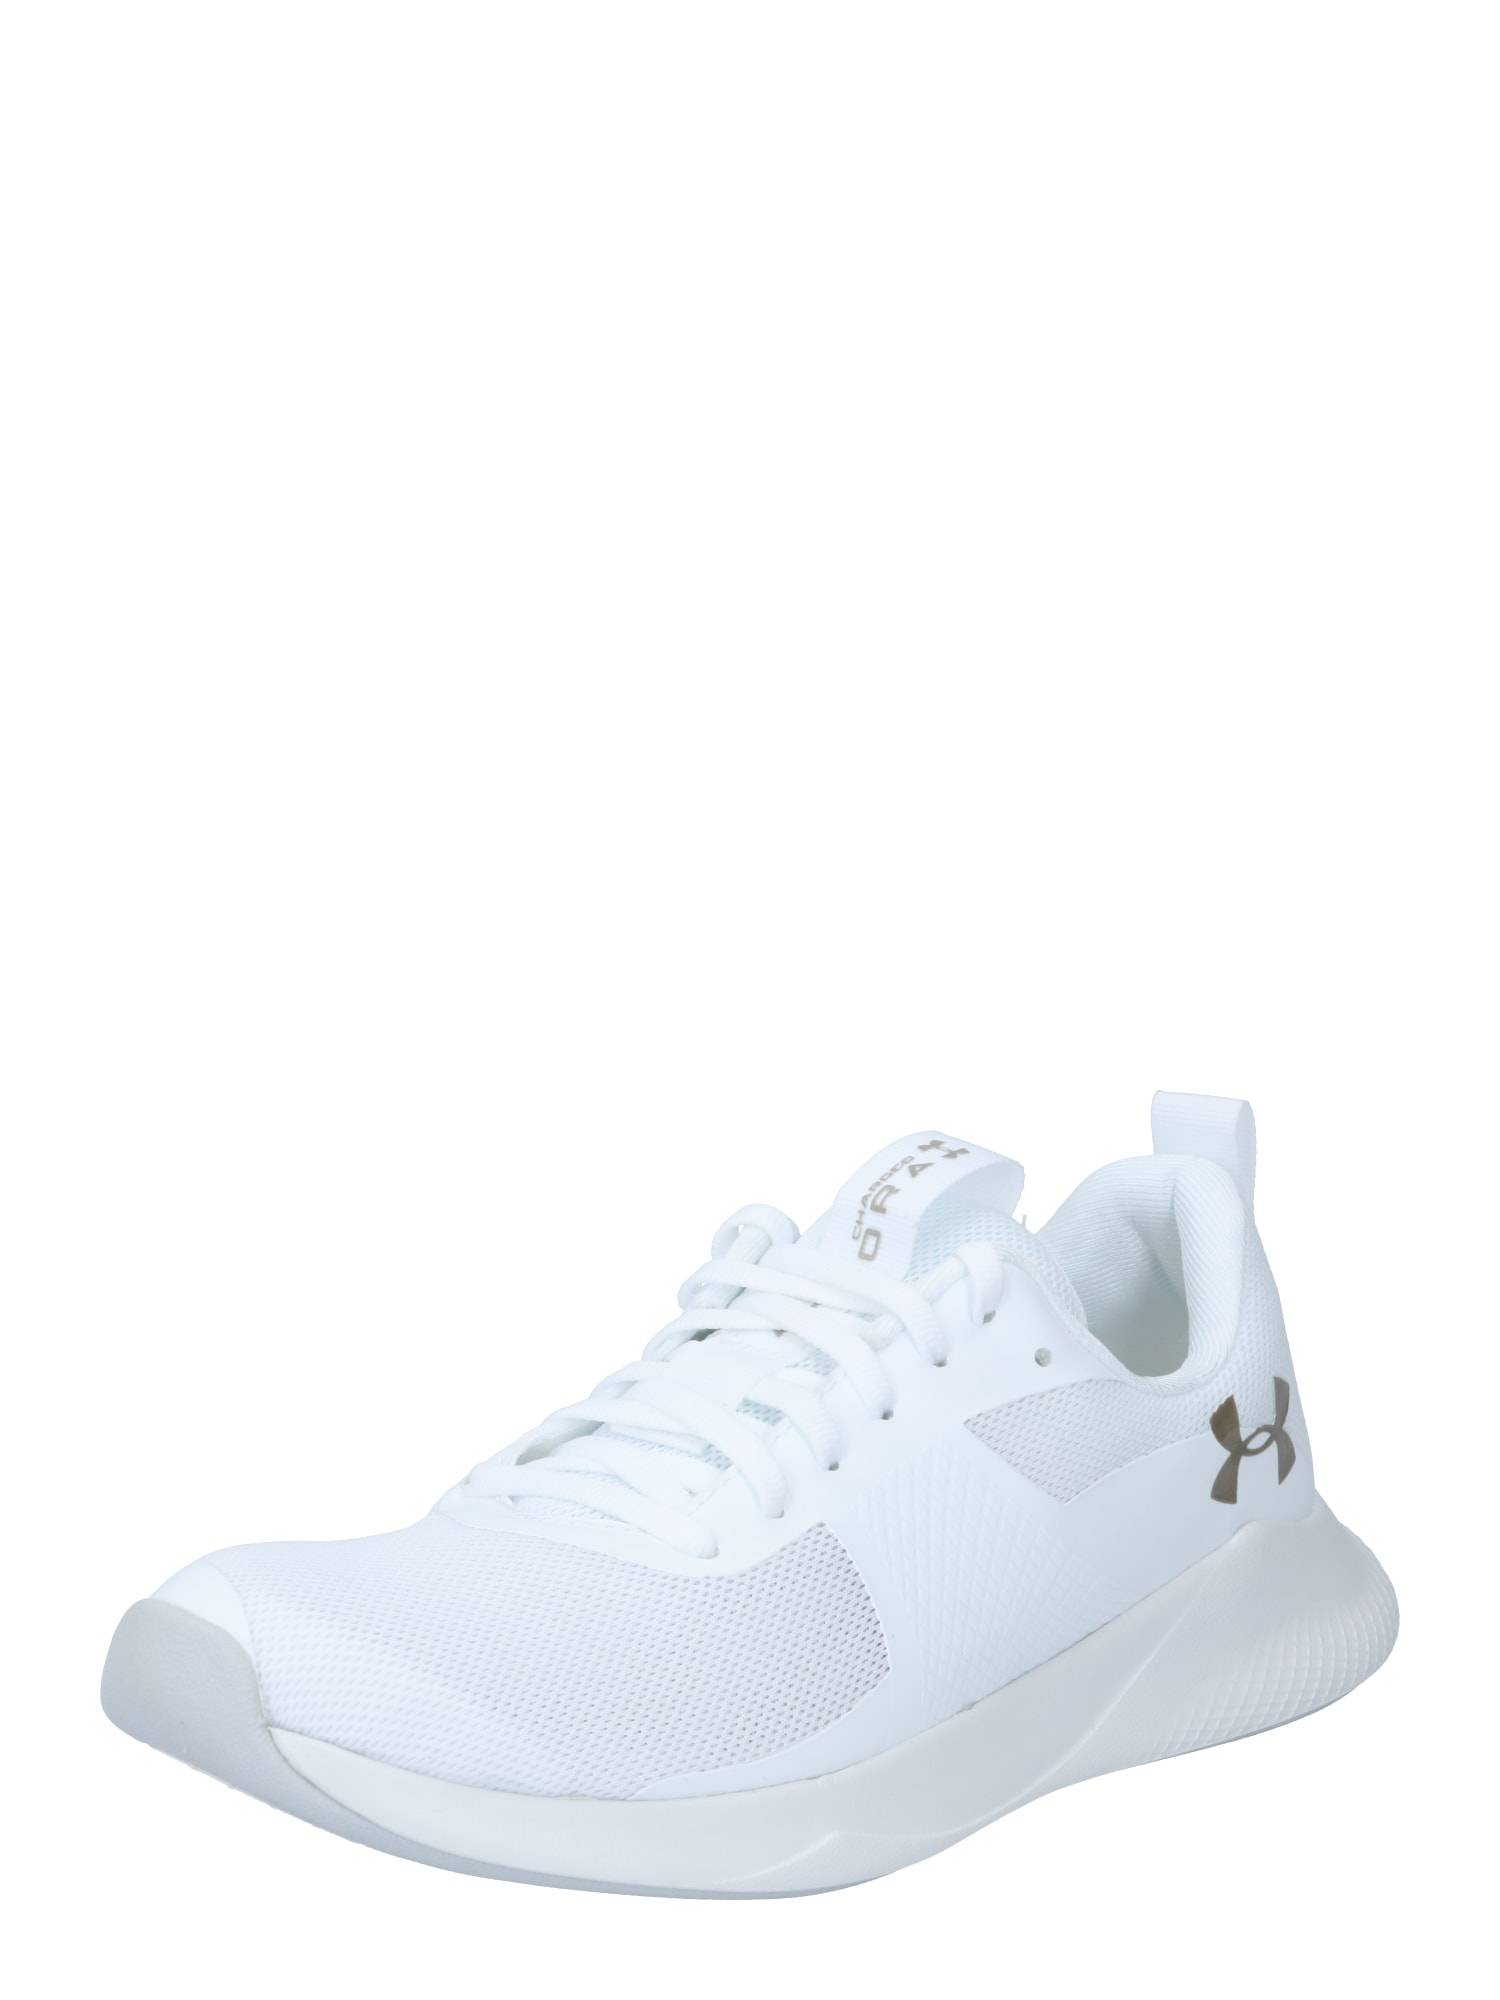 UNDER ARMOUR Chaussure de sport 'UA W Charged Aurora'  - Blanc - Taille: 9 - female